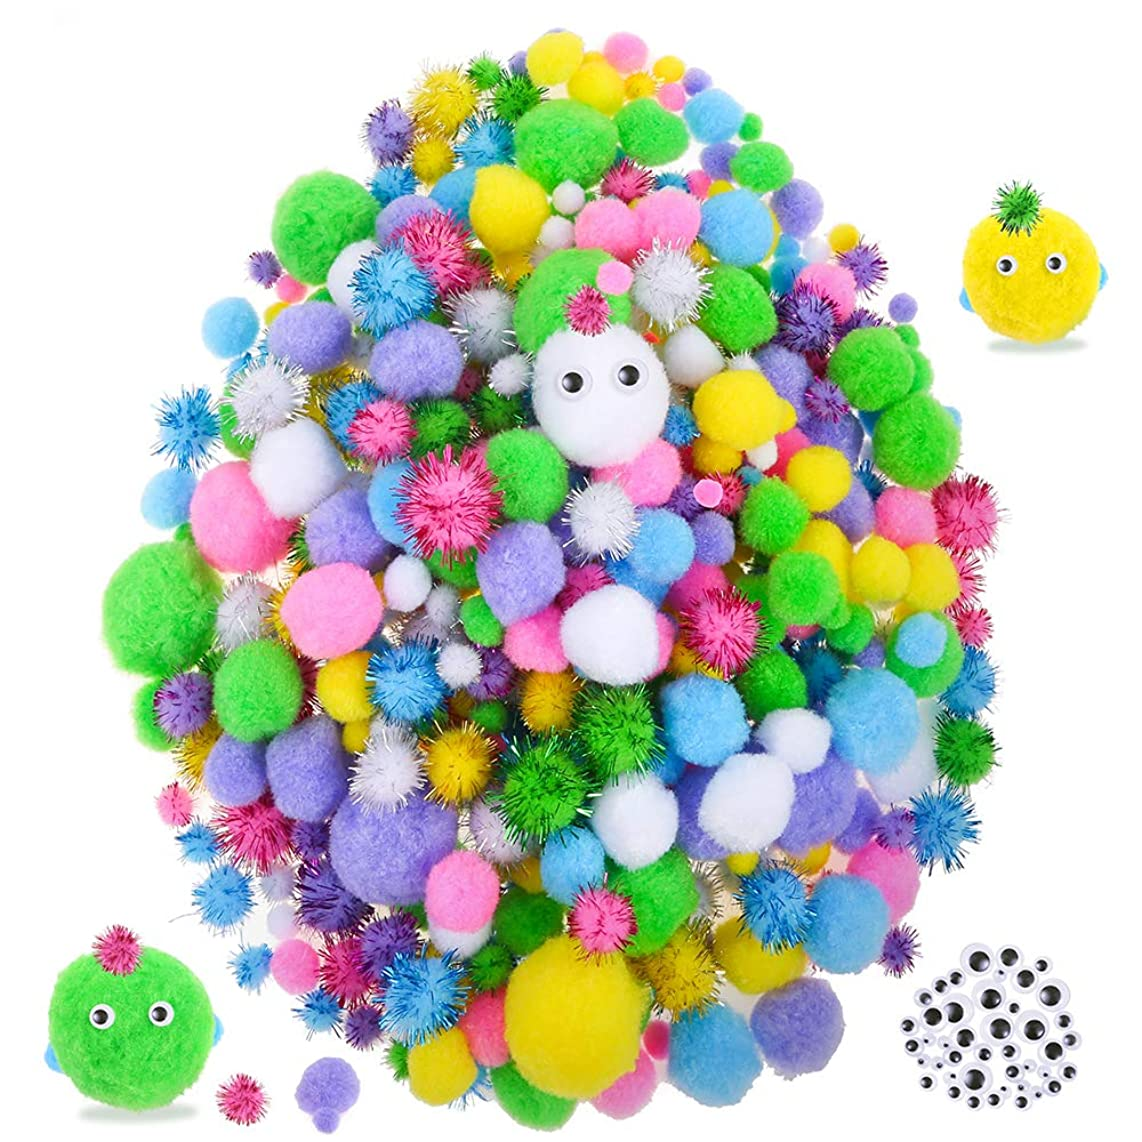 Caydo 600 Pieces Fuzzy 6 Sizes Easter Egg Assorted Pompoms, 4 Sizes Glitter Pompoms and 3 Sizes Wiggle Googly Eyes for Easter Day DIY Crafts Decorations